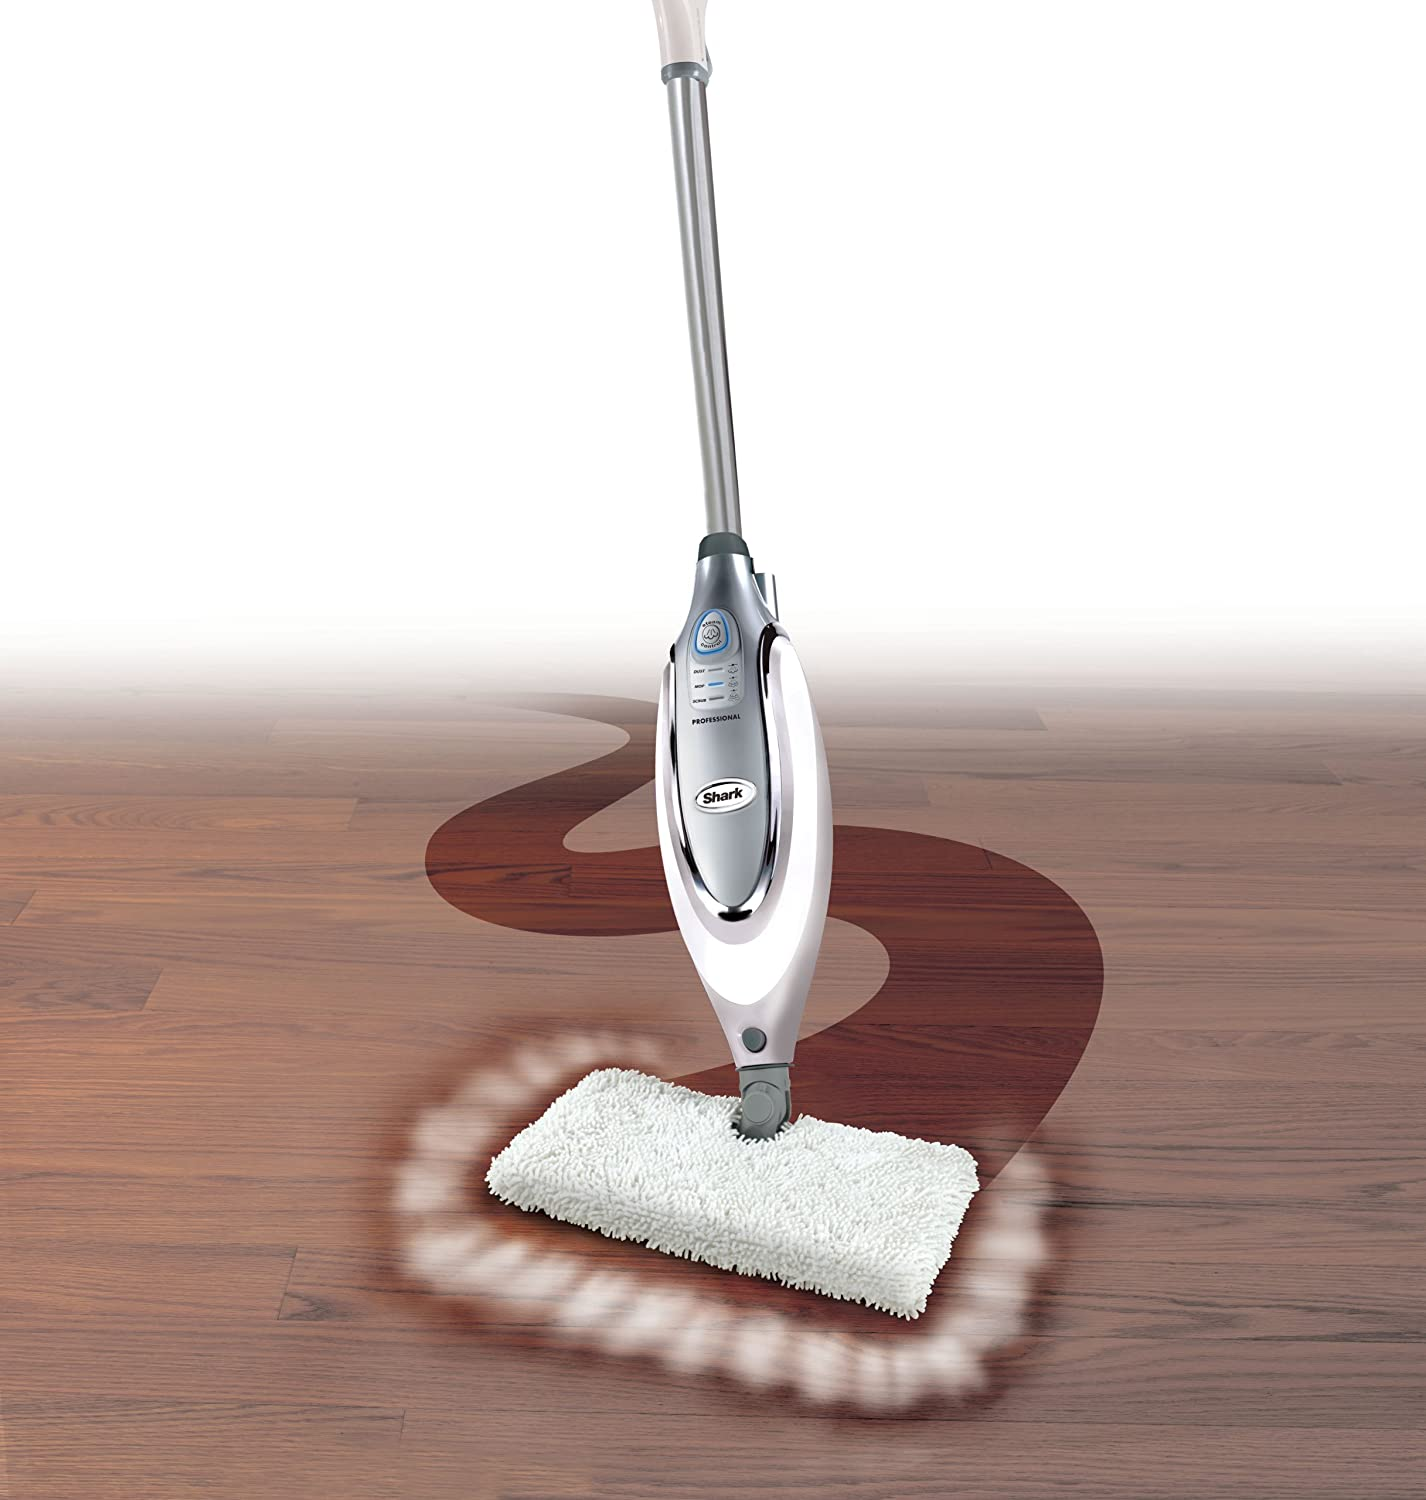 Shark Professional Steam Pocket Mop S3601d Sharkninja